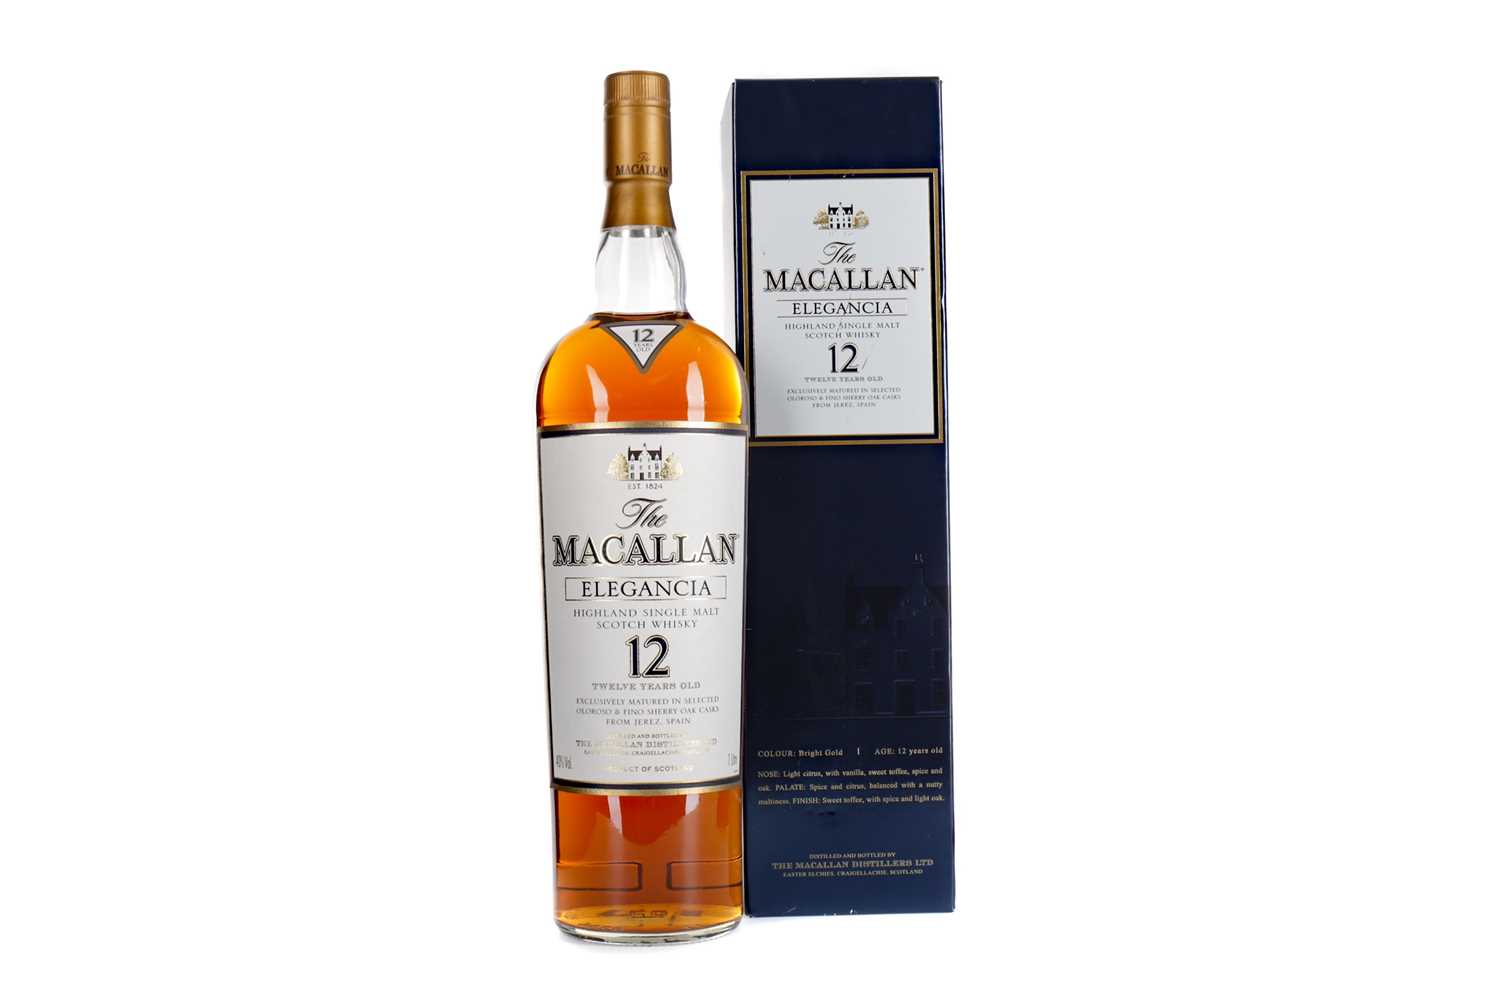 Lot 115 - MACALLAN ELEGANCIA 12 YEARS OLD - ONE LITRE